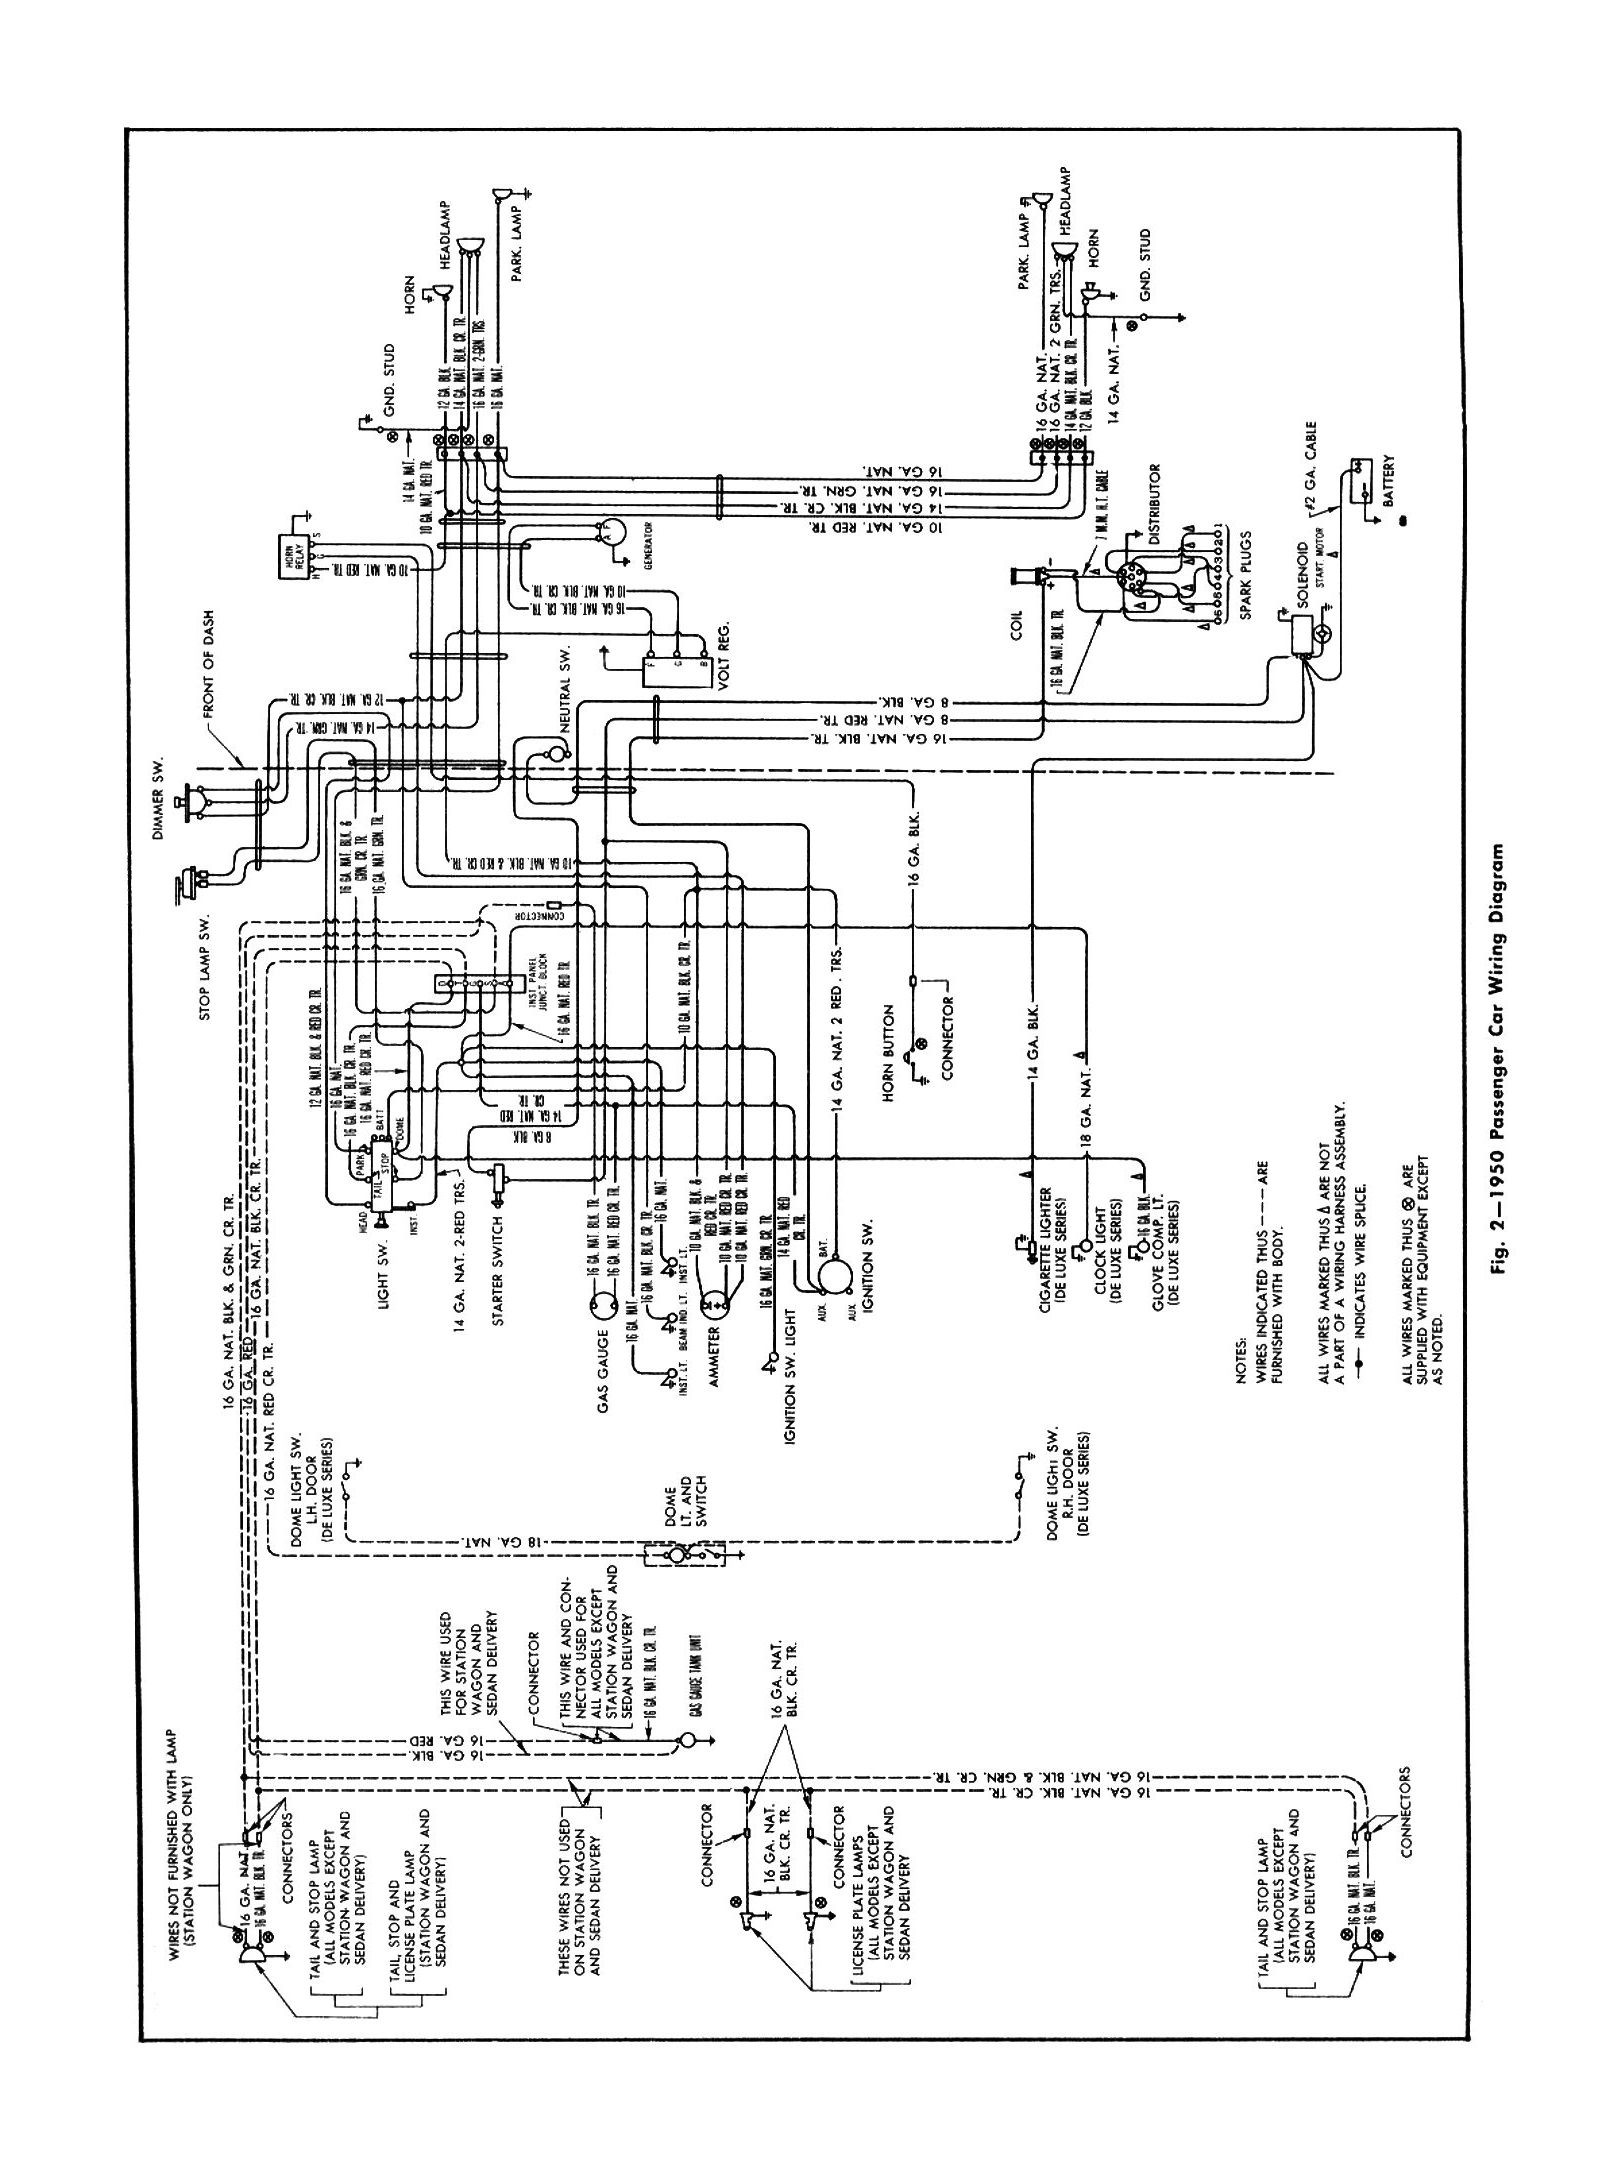 chevy wiring diagrams rh chevy oldcarmanualproject com Chevy Tail Light Wiring Diagram Chevy Wiring Diagrams Color